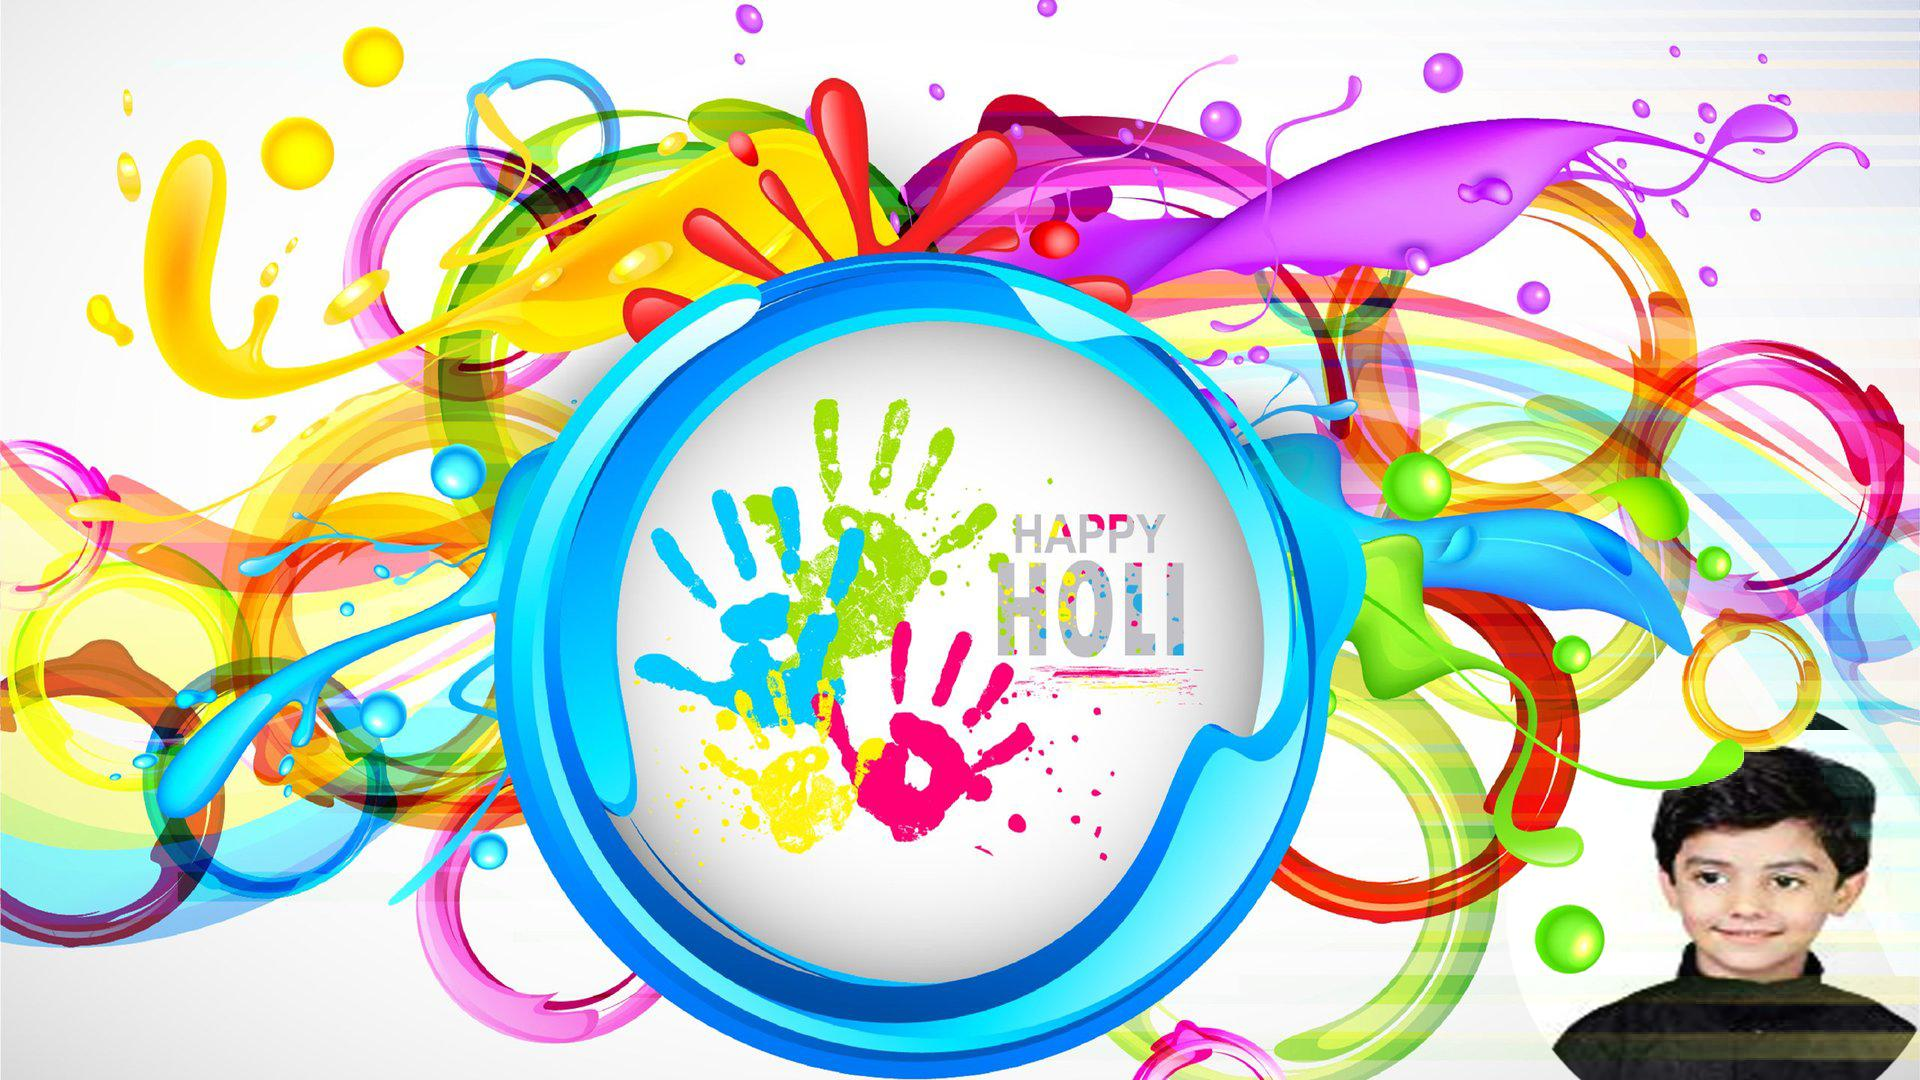 Happy Holi Photo Frame for Android.